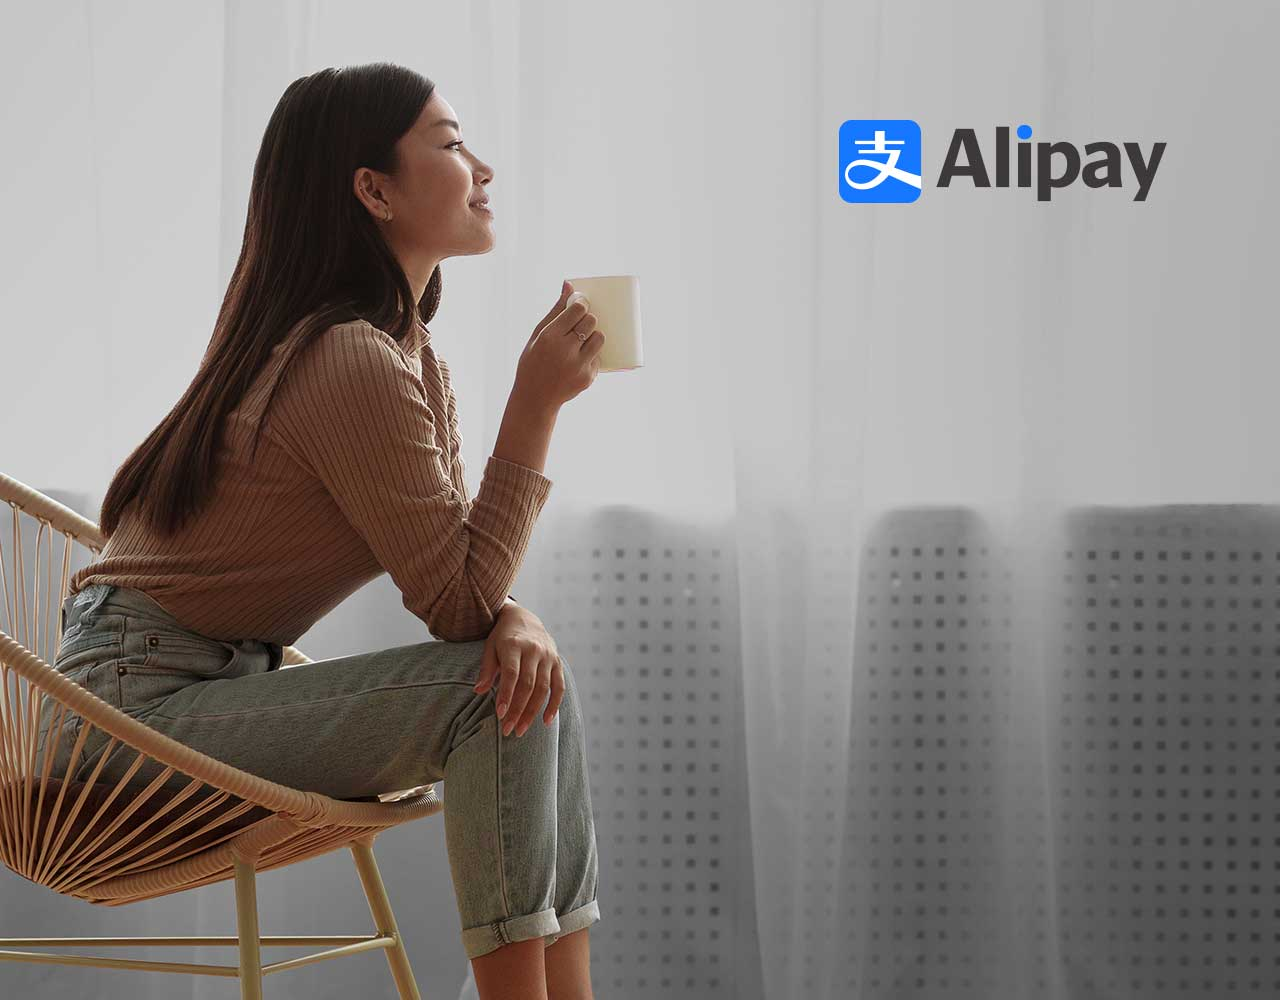 Girl with a cup and AliPay logo in right corner